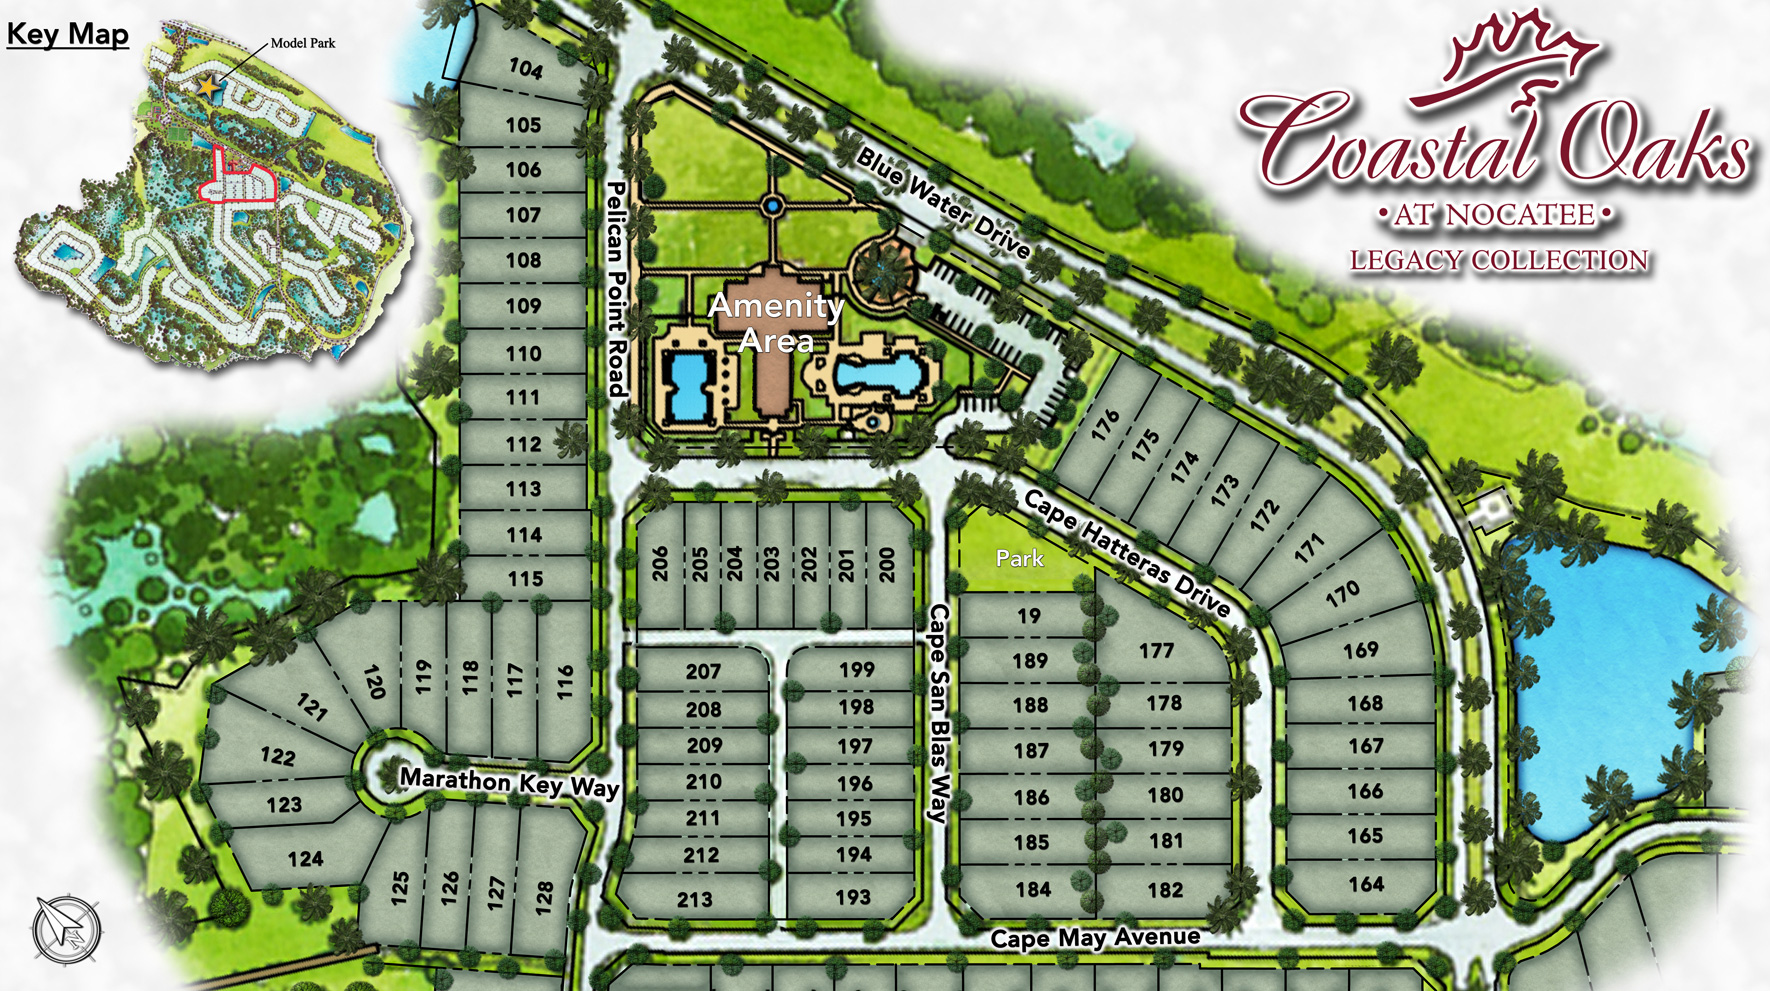 coastal oaks at nocatee   legacy collection site plan